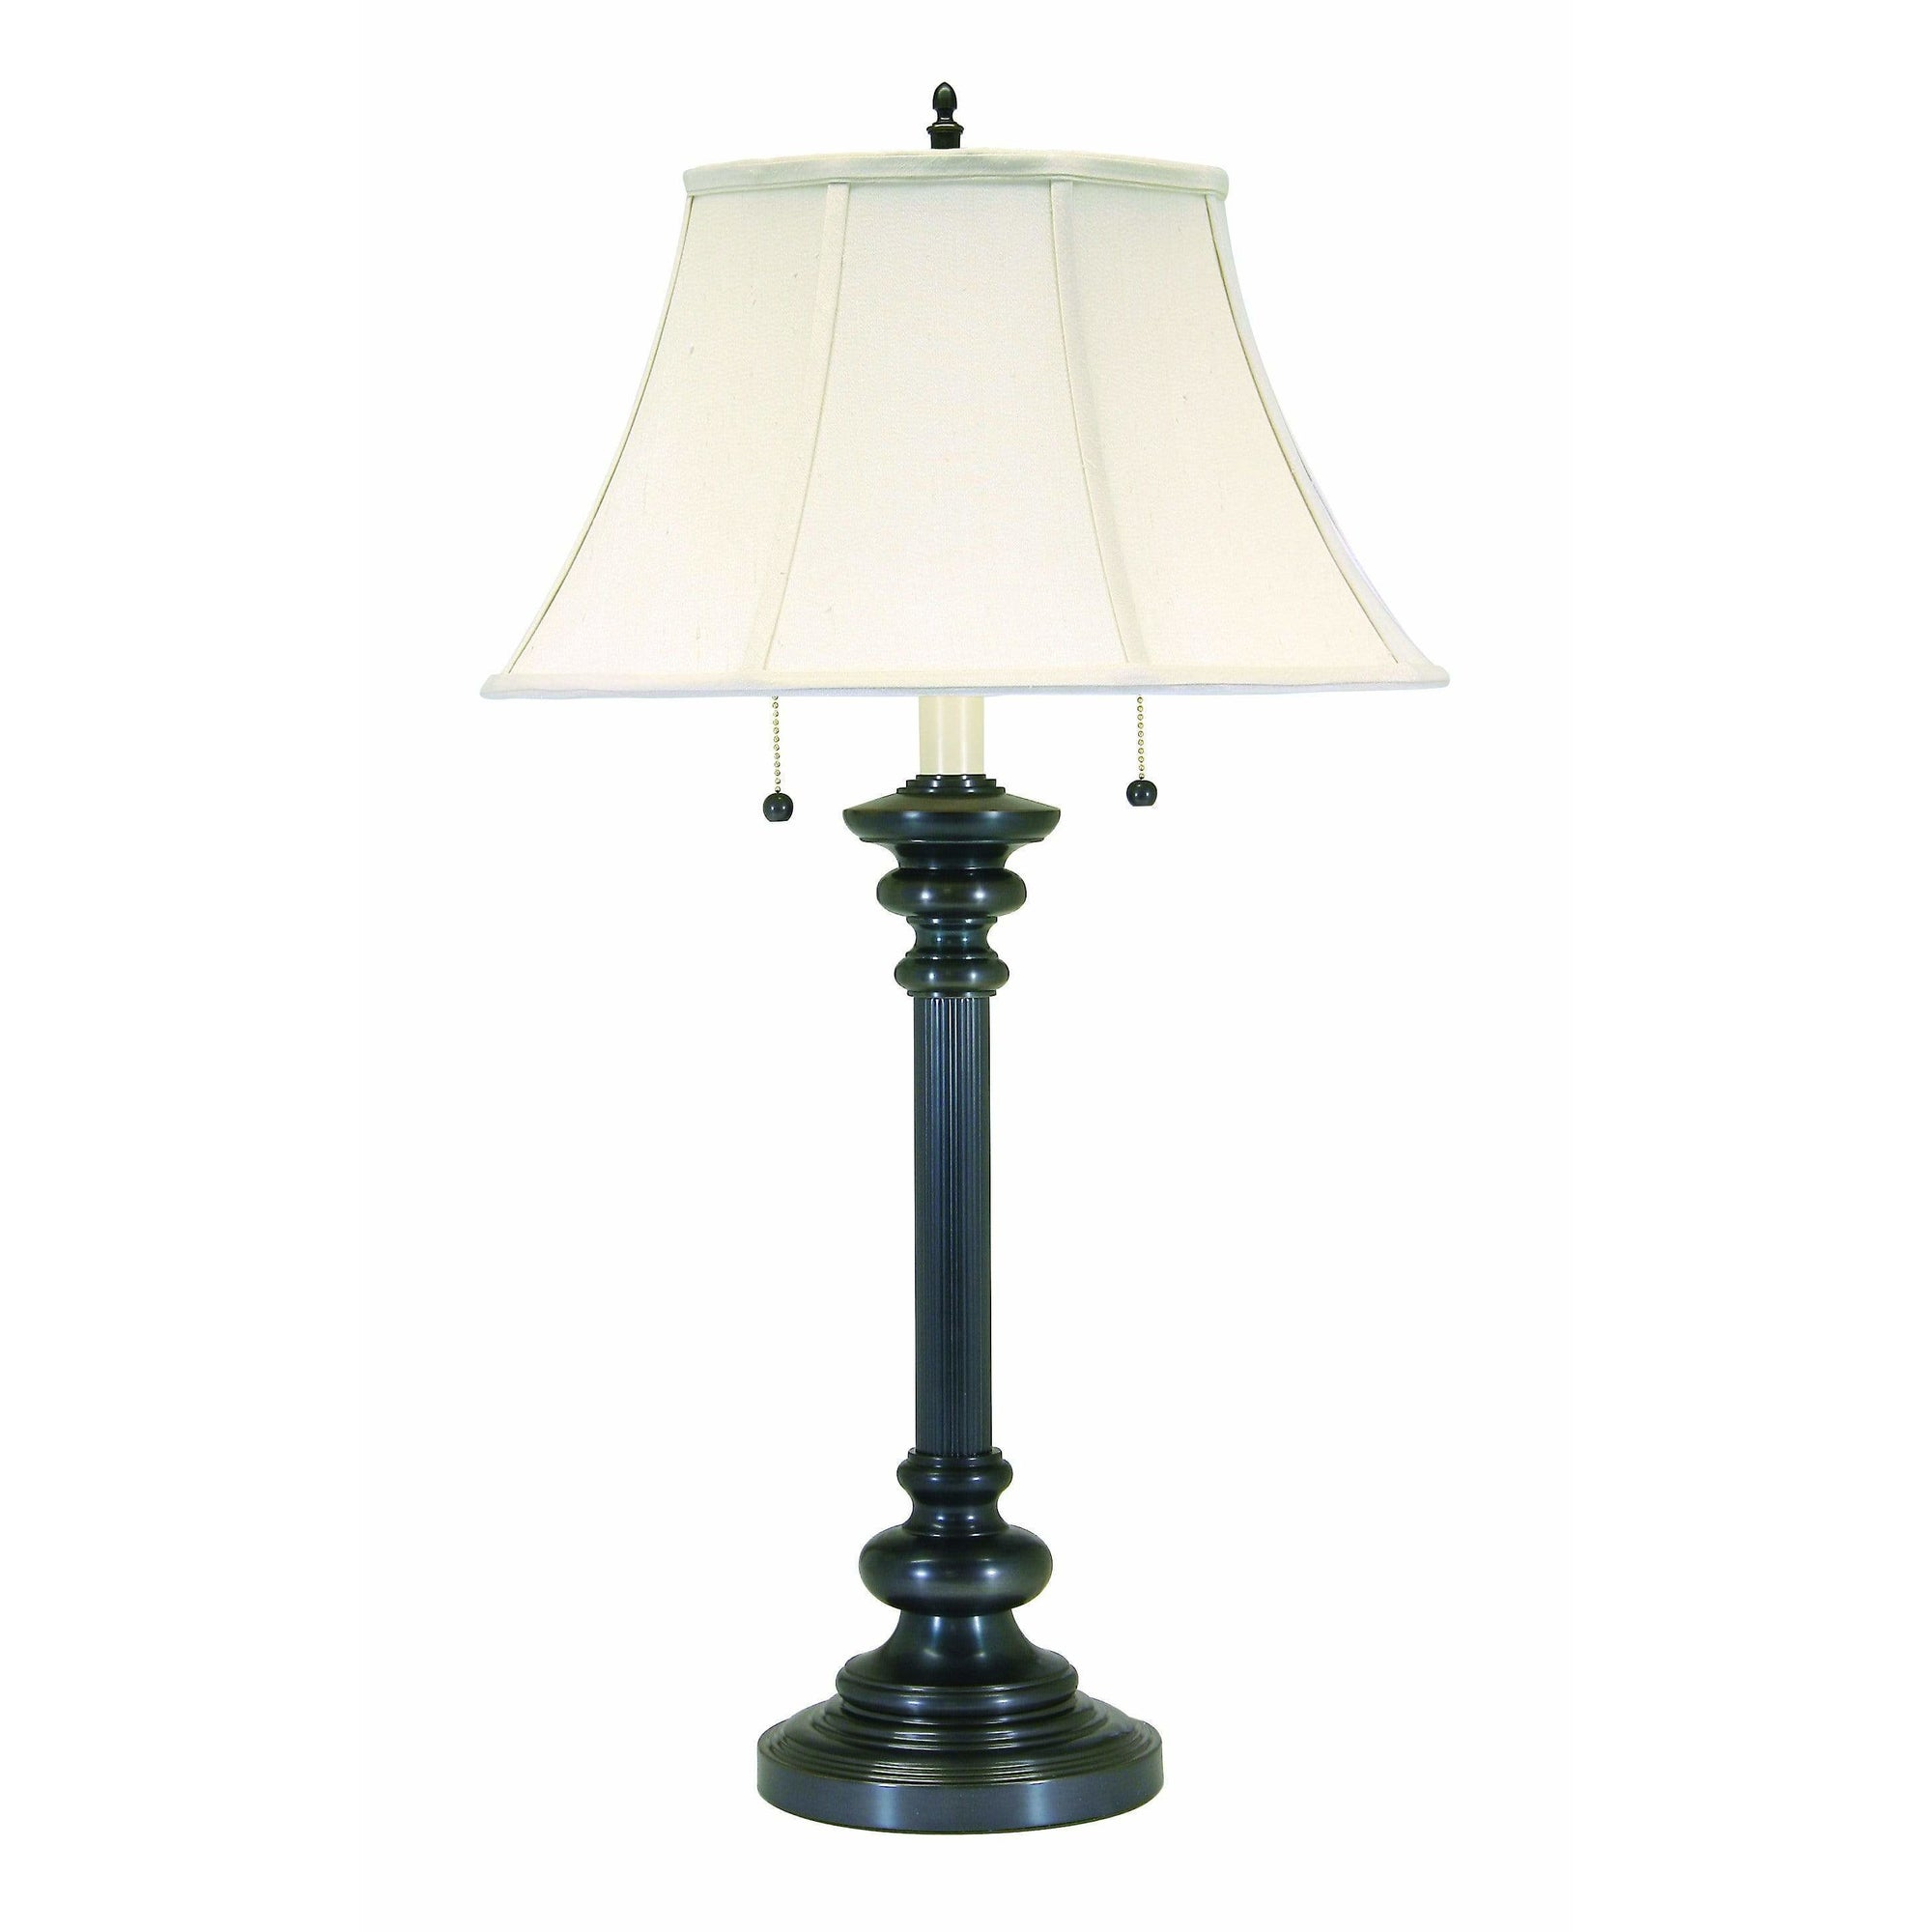 House Of Troy Table Lamps Newport Twin Pull Table Lamp by House Of Troy N651-OB